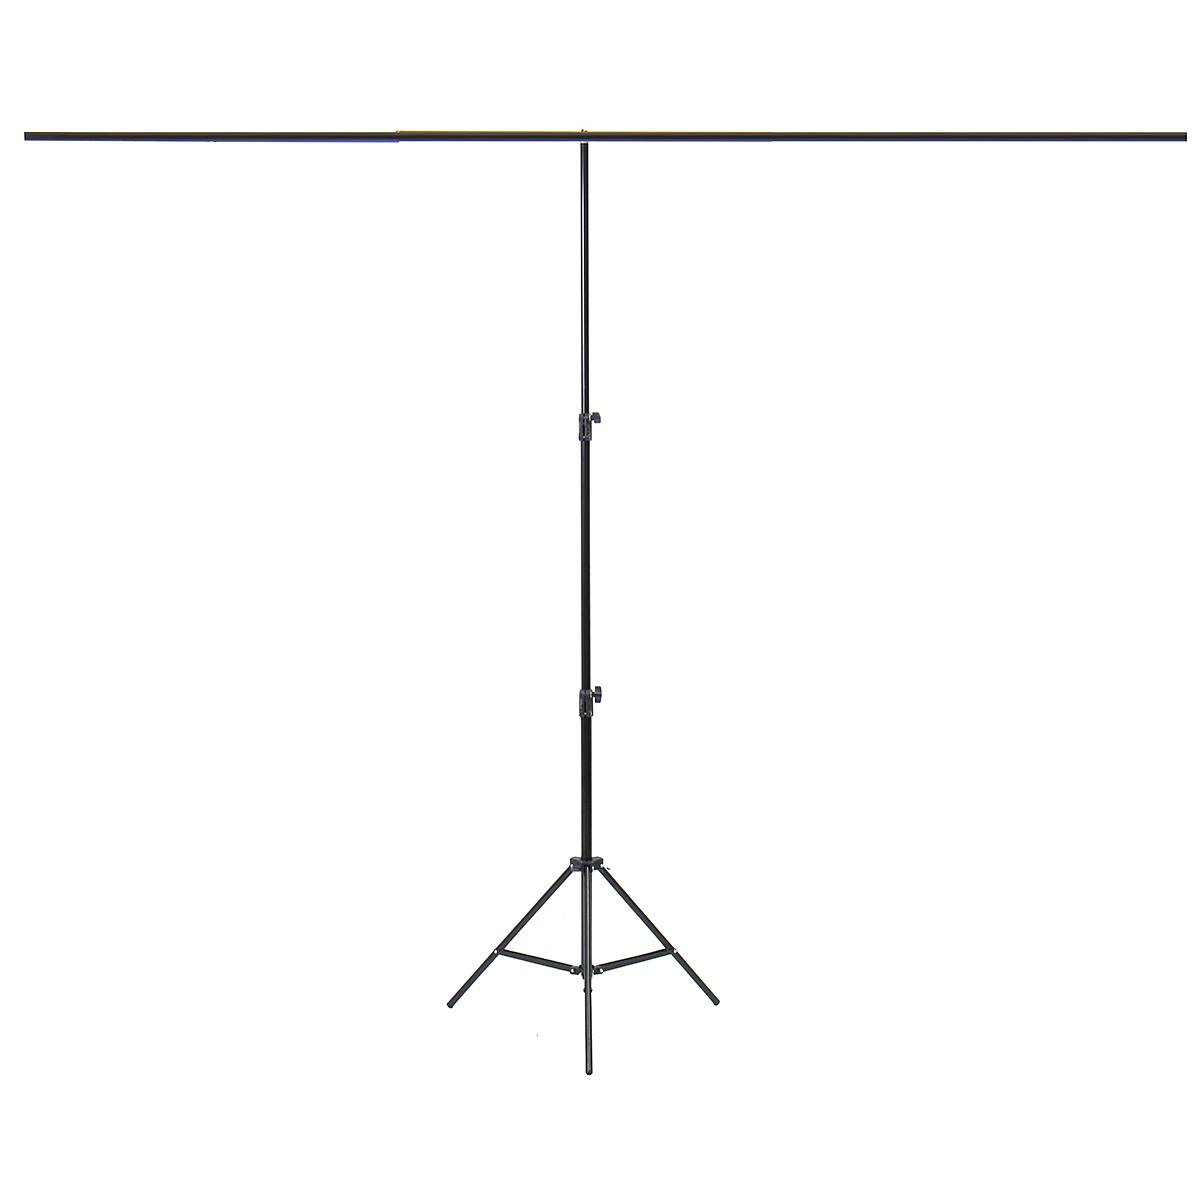 NEW 200*200cm Large Aluminium Photography Background Support Stand System w/4xClips